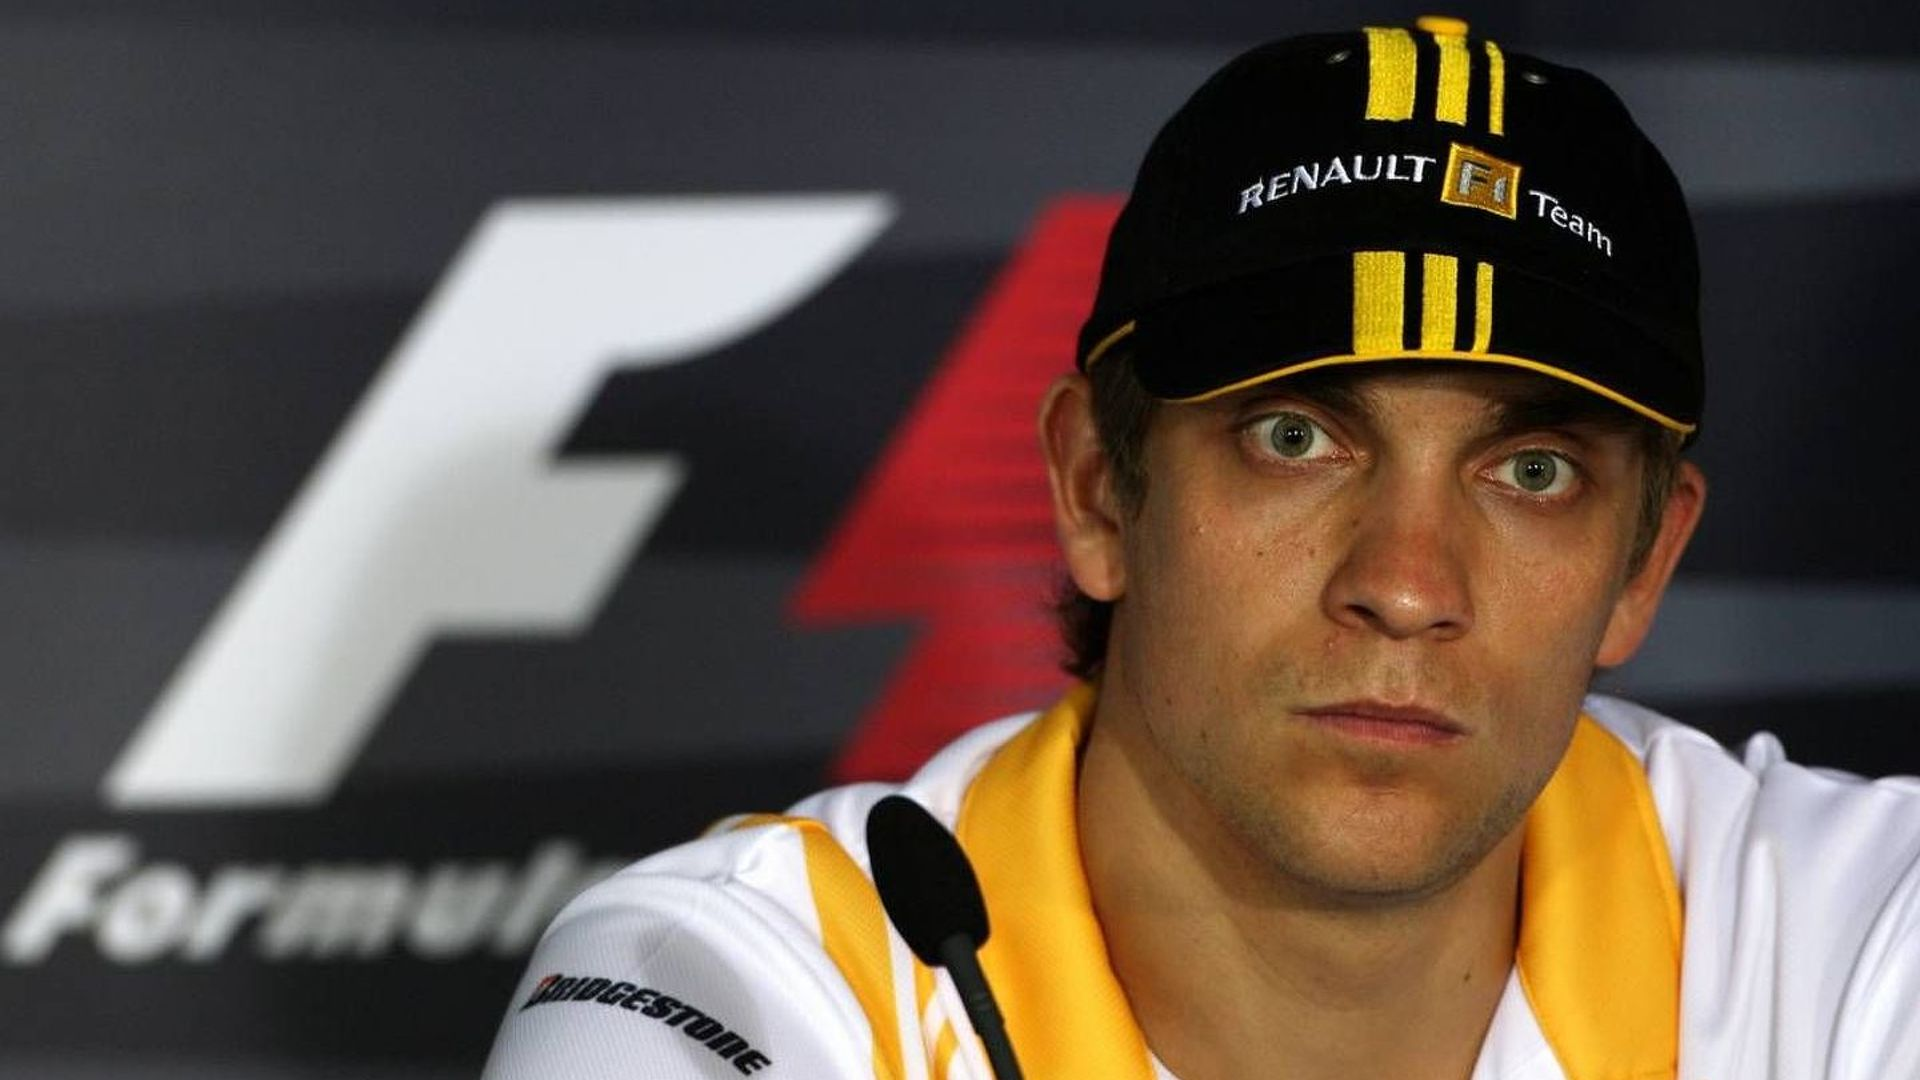 Petrov the 'worst driver' on 2010 grid - Verstappen